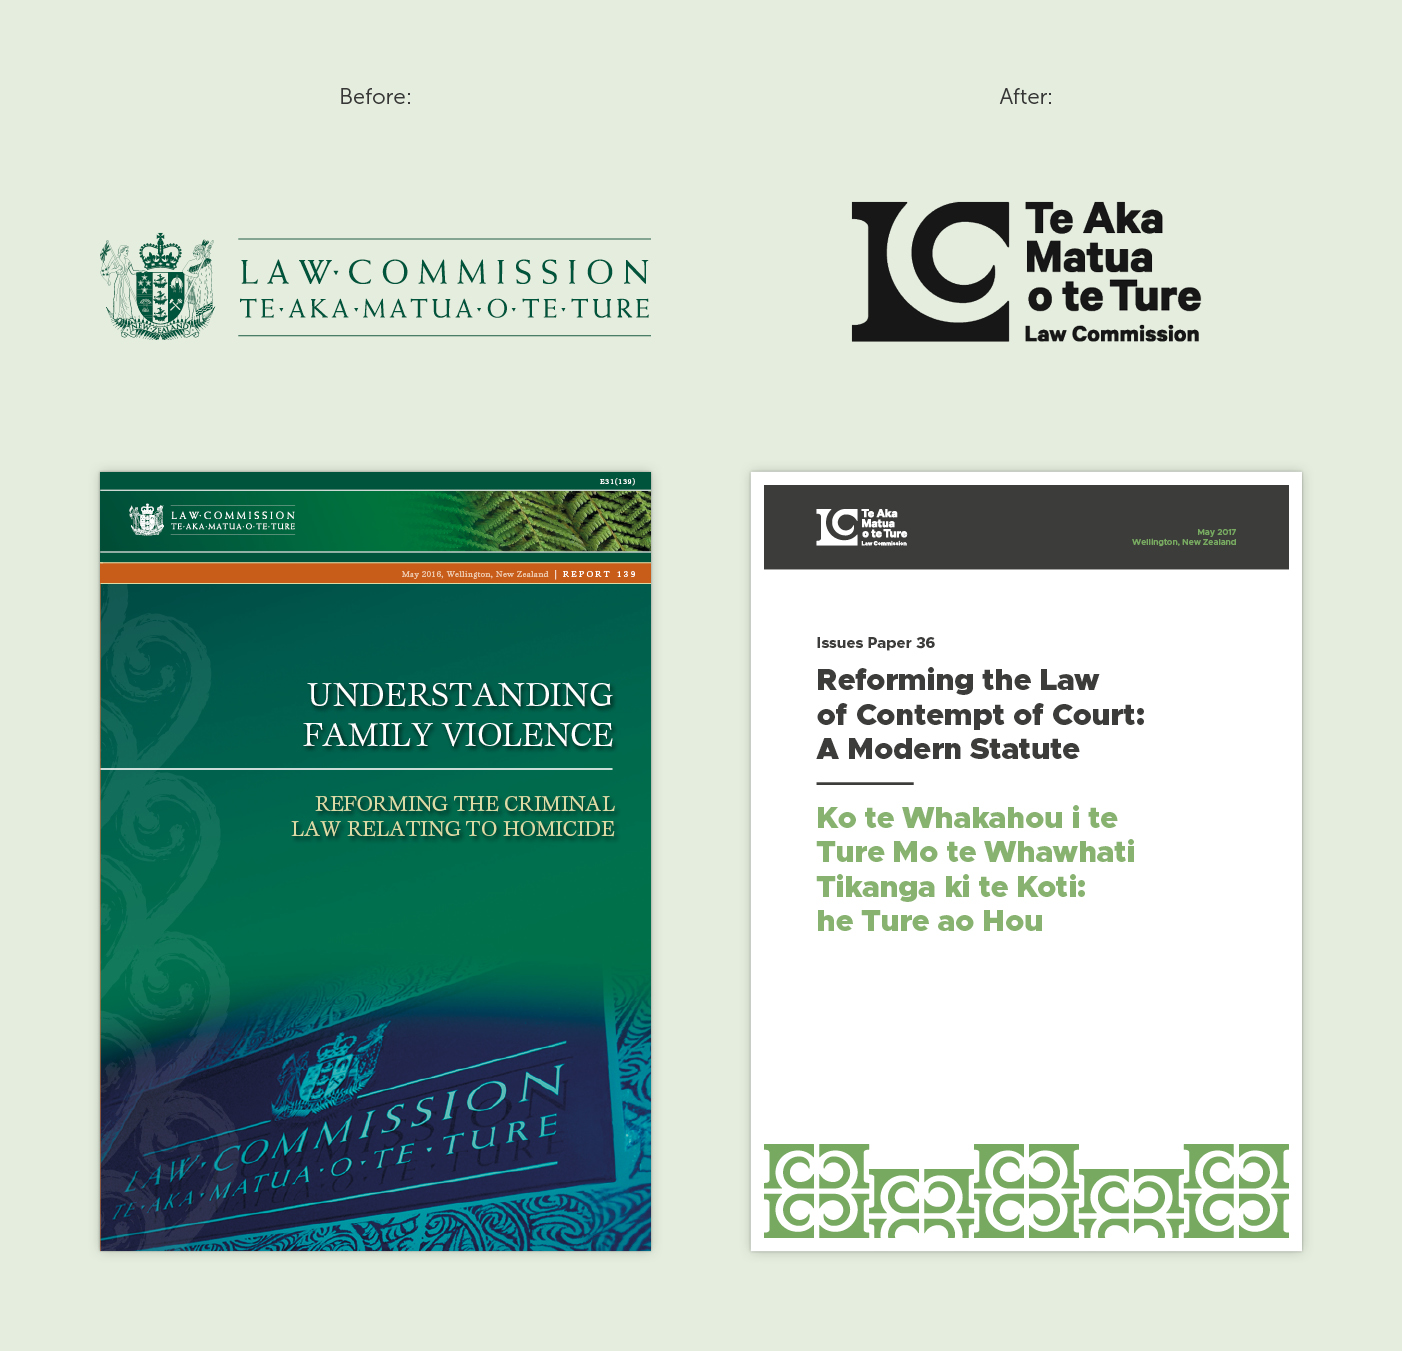 Law Commission brand before and after